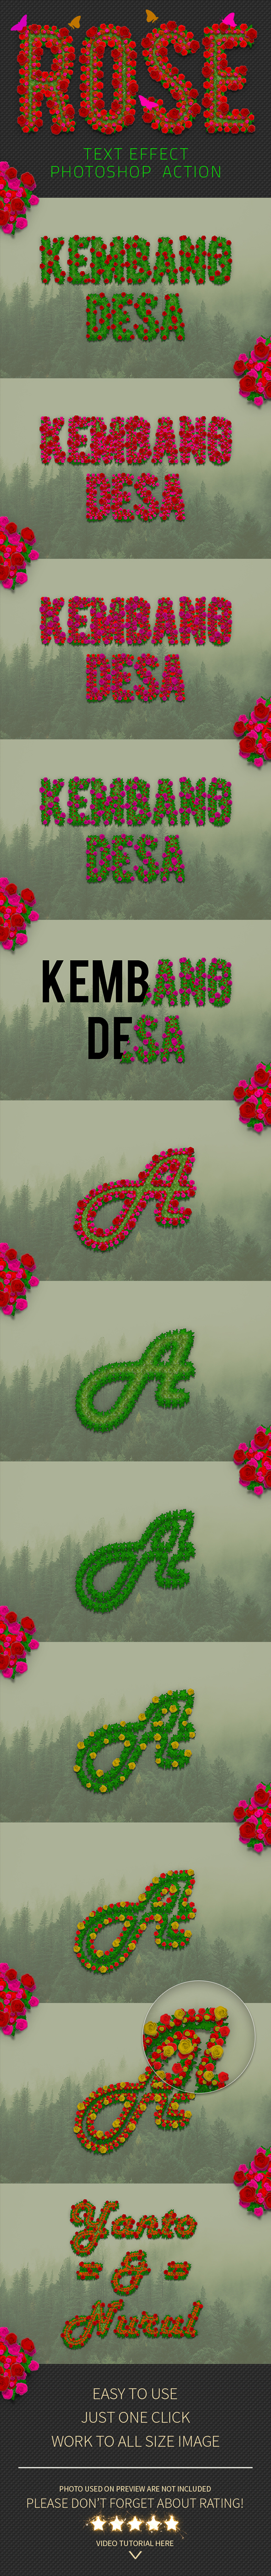 Rose Flowers Text Effect Photoshop Action - Text Effects Actions